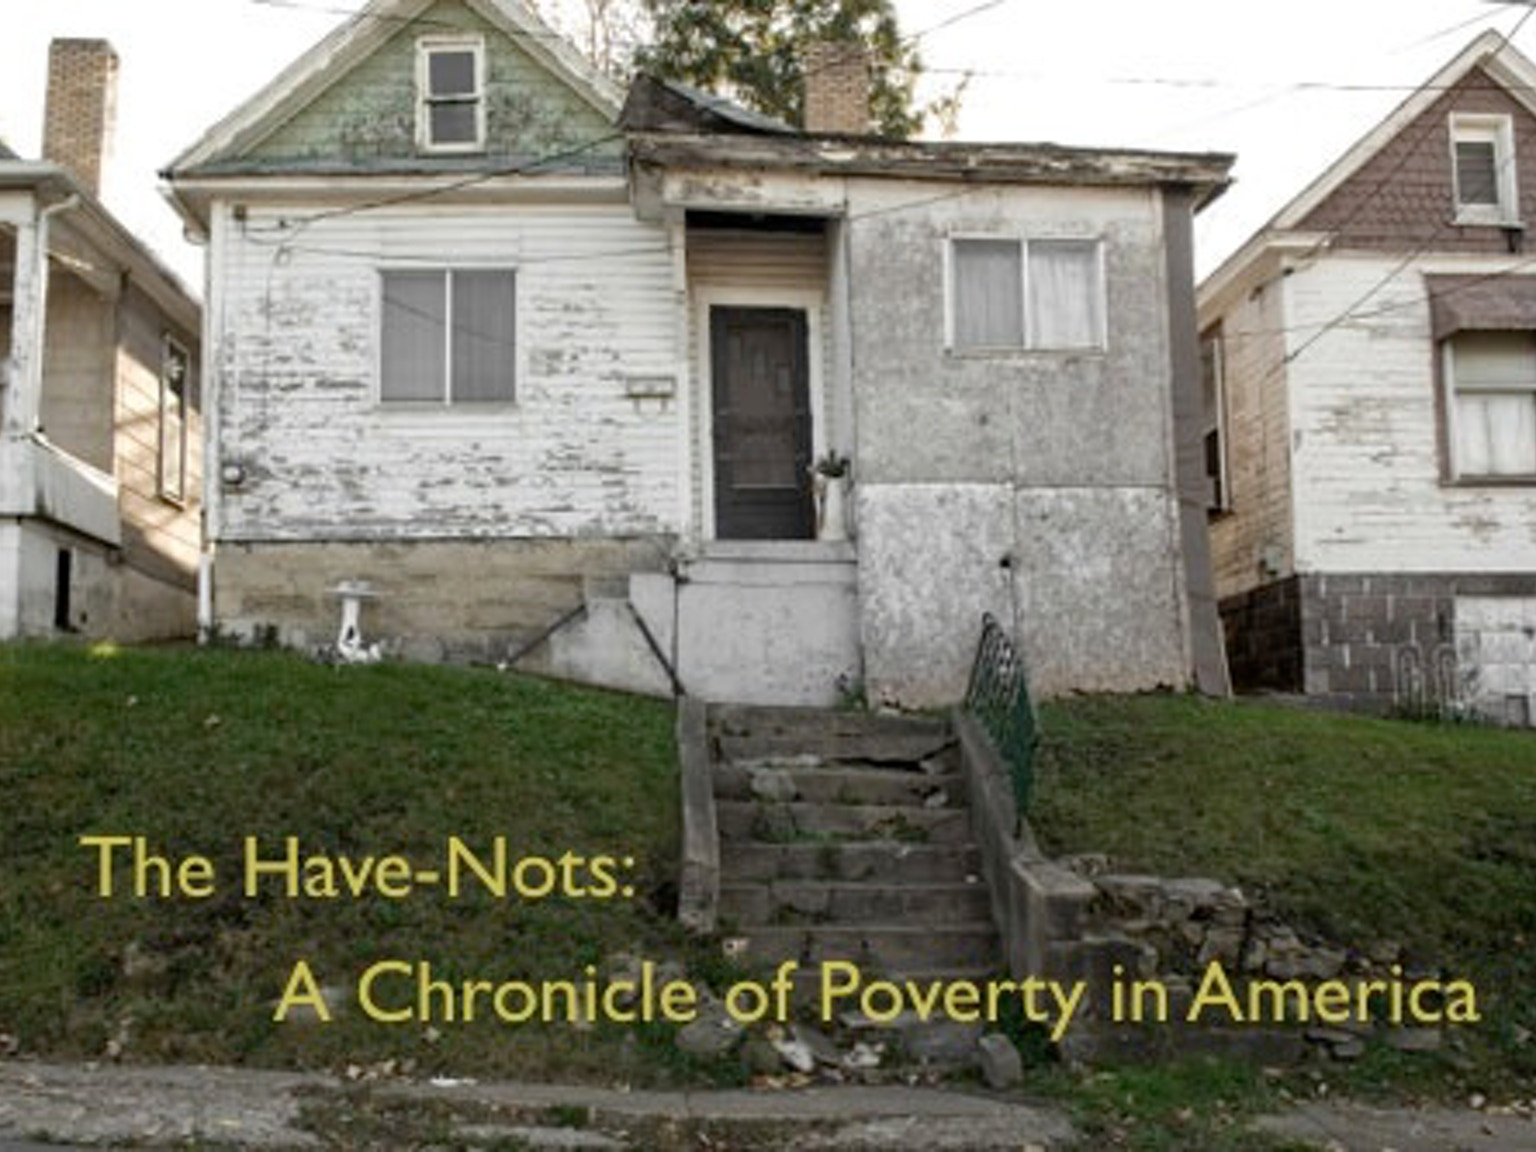 poverty in the world essay causes poverty essay causes poverty  essay on poverty in america poverty essays poverty in america 123helpme